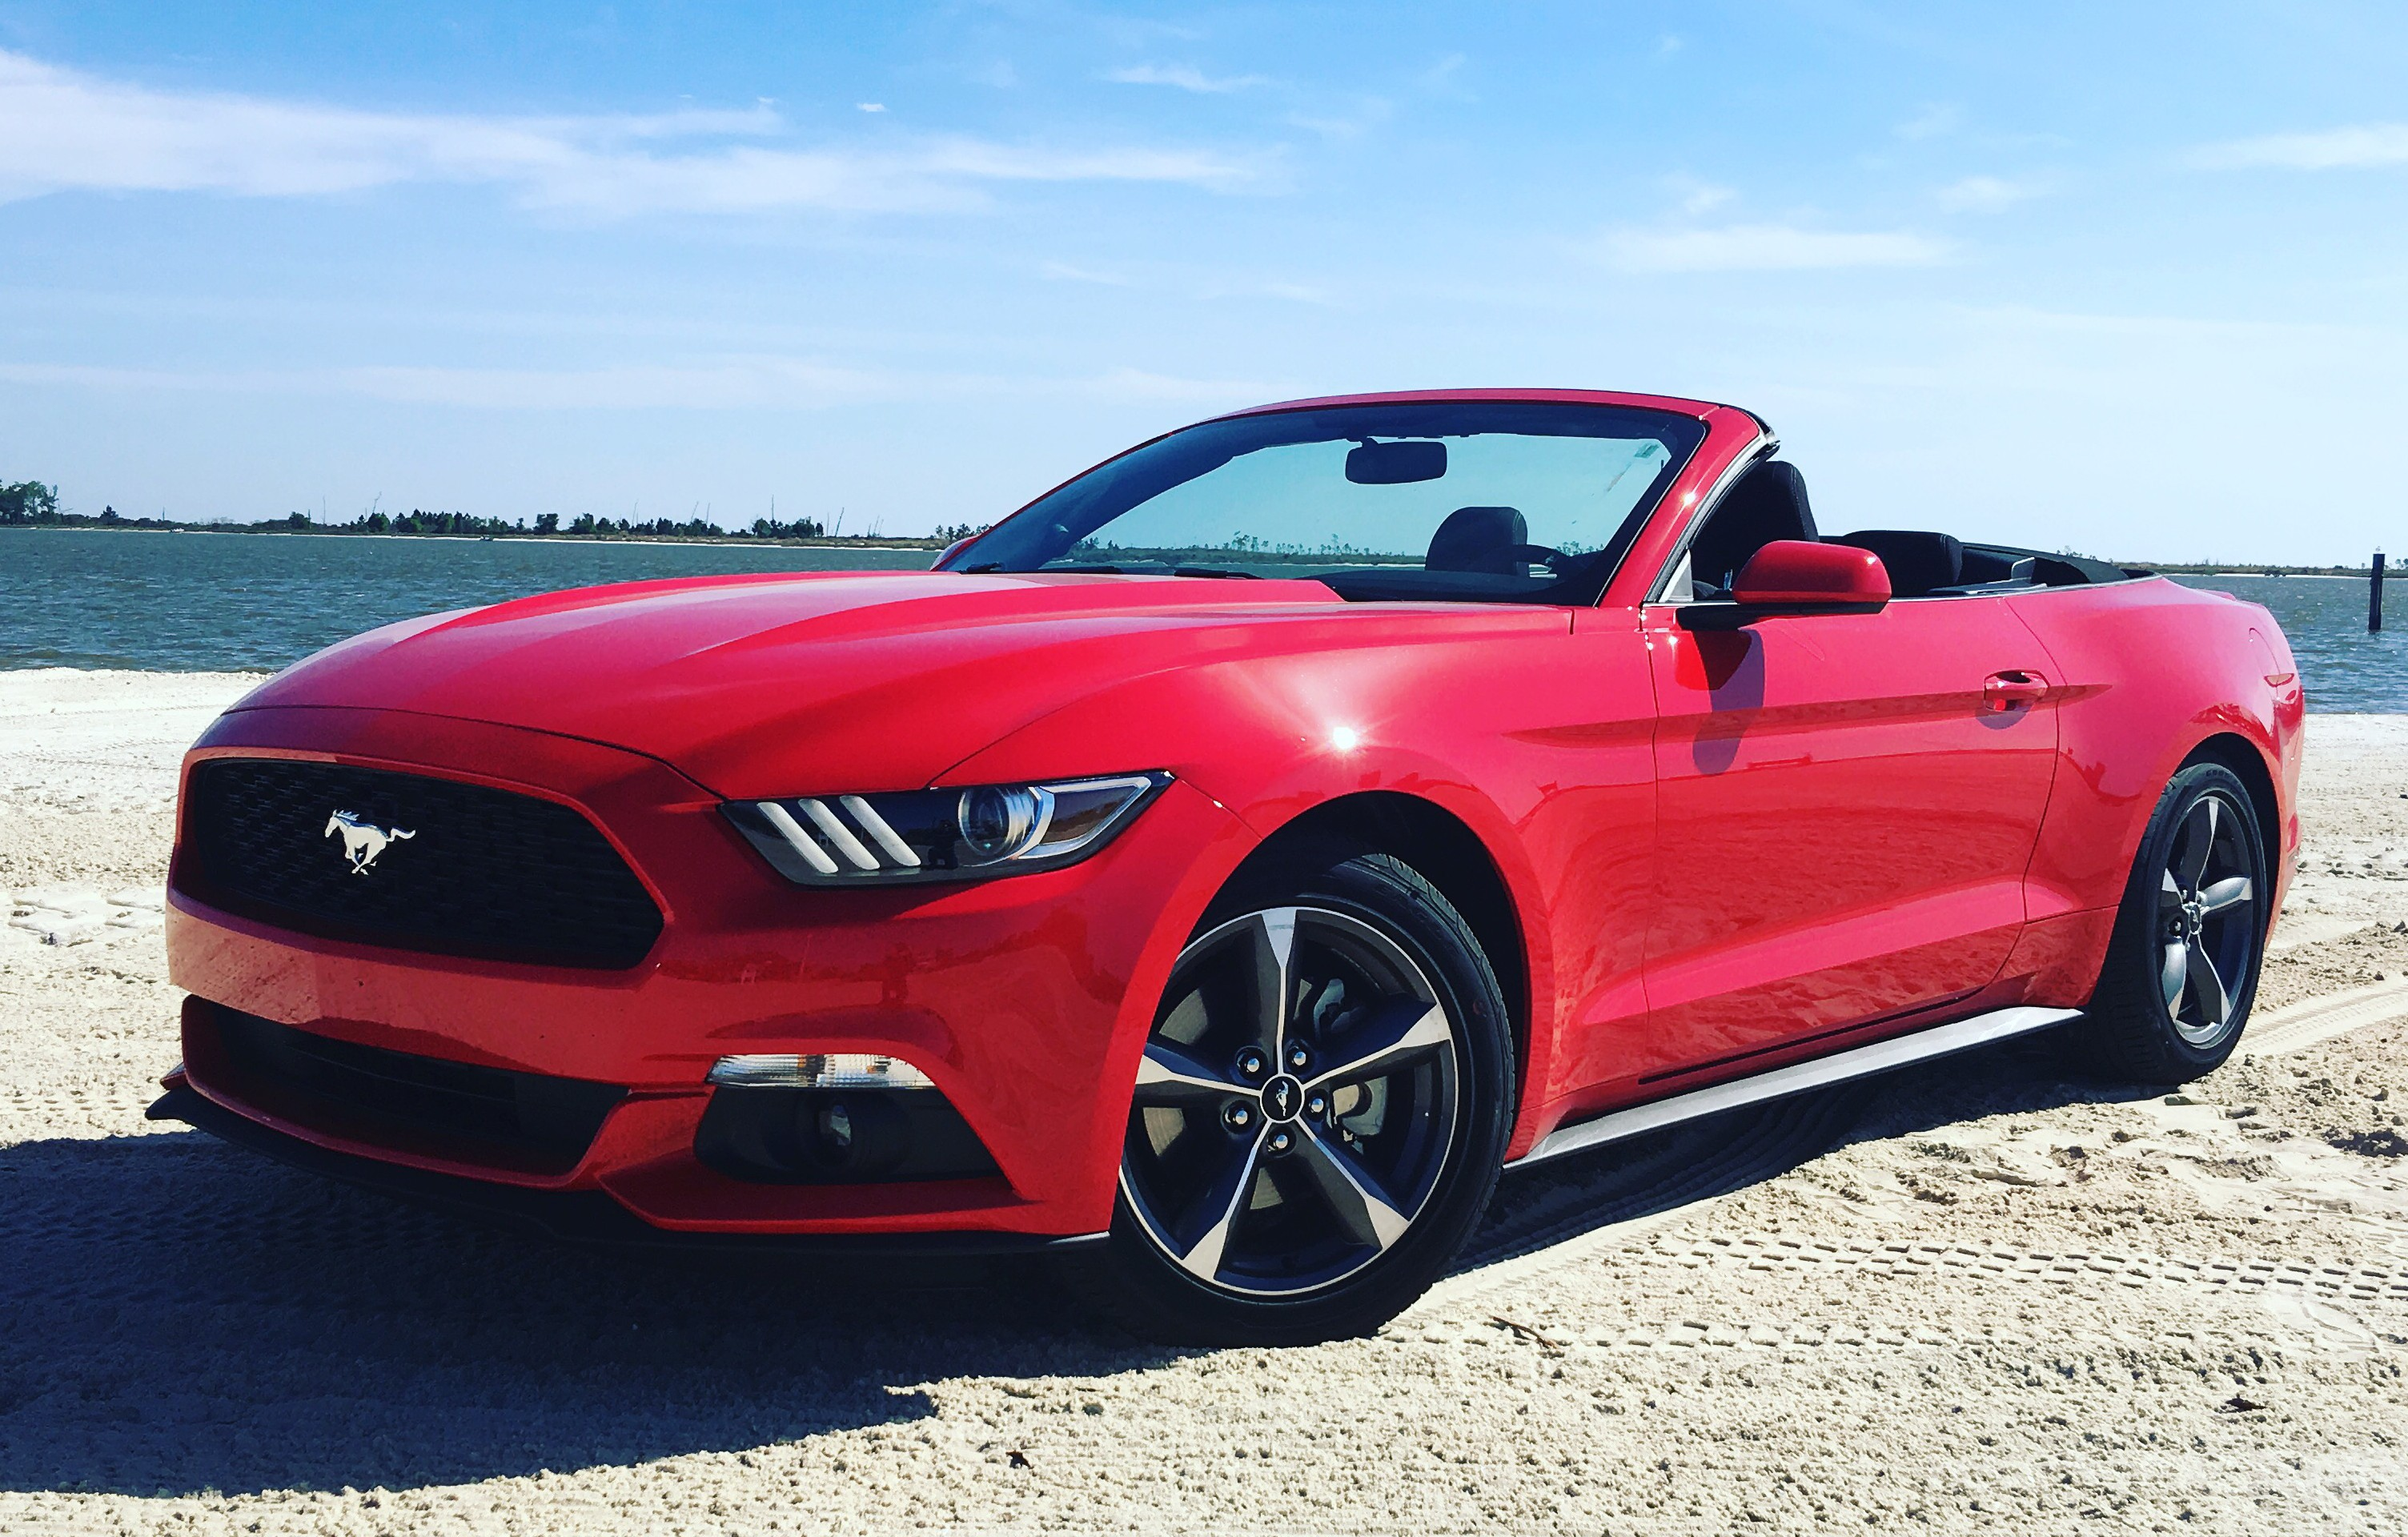 2016 Dodge Ram Reviews >> 2016 Ford Mustang V6 Convertible Rental Review